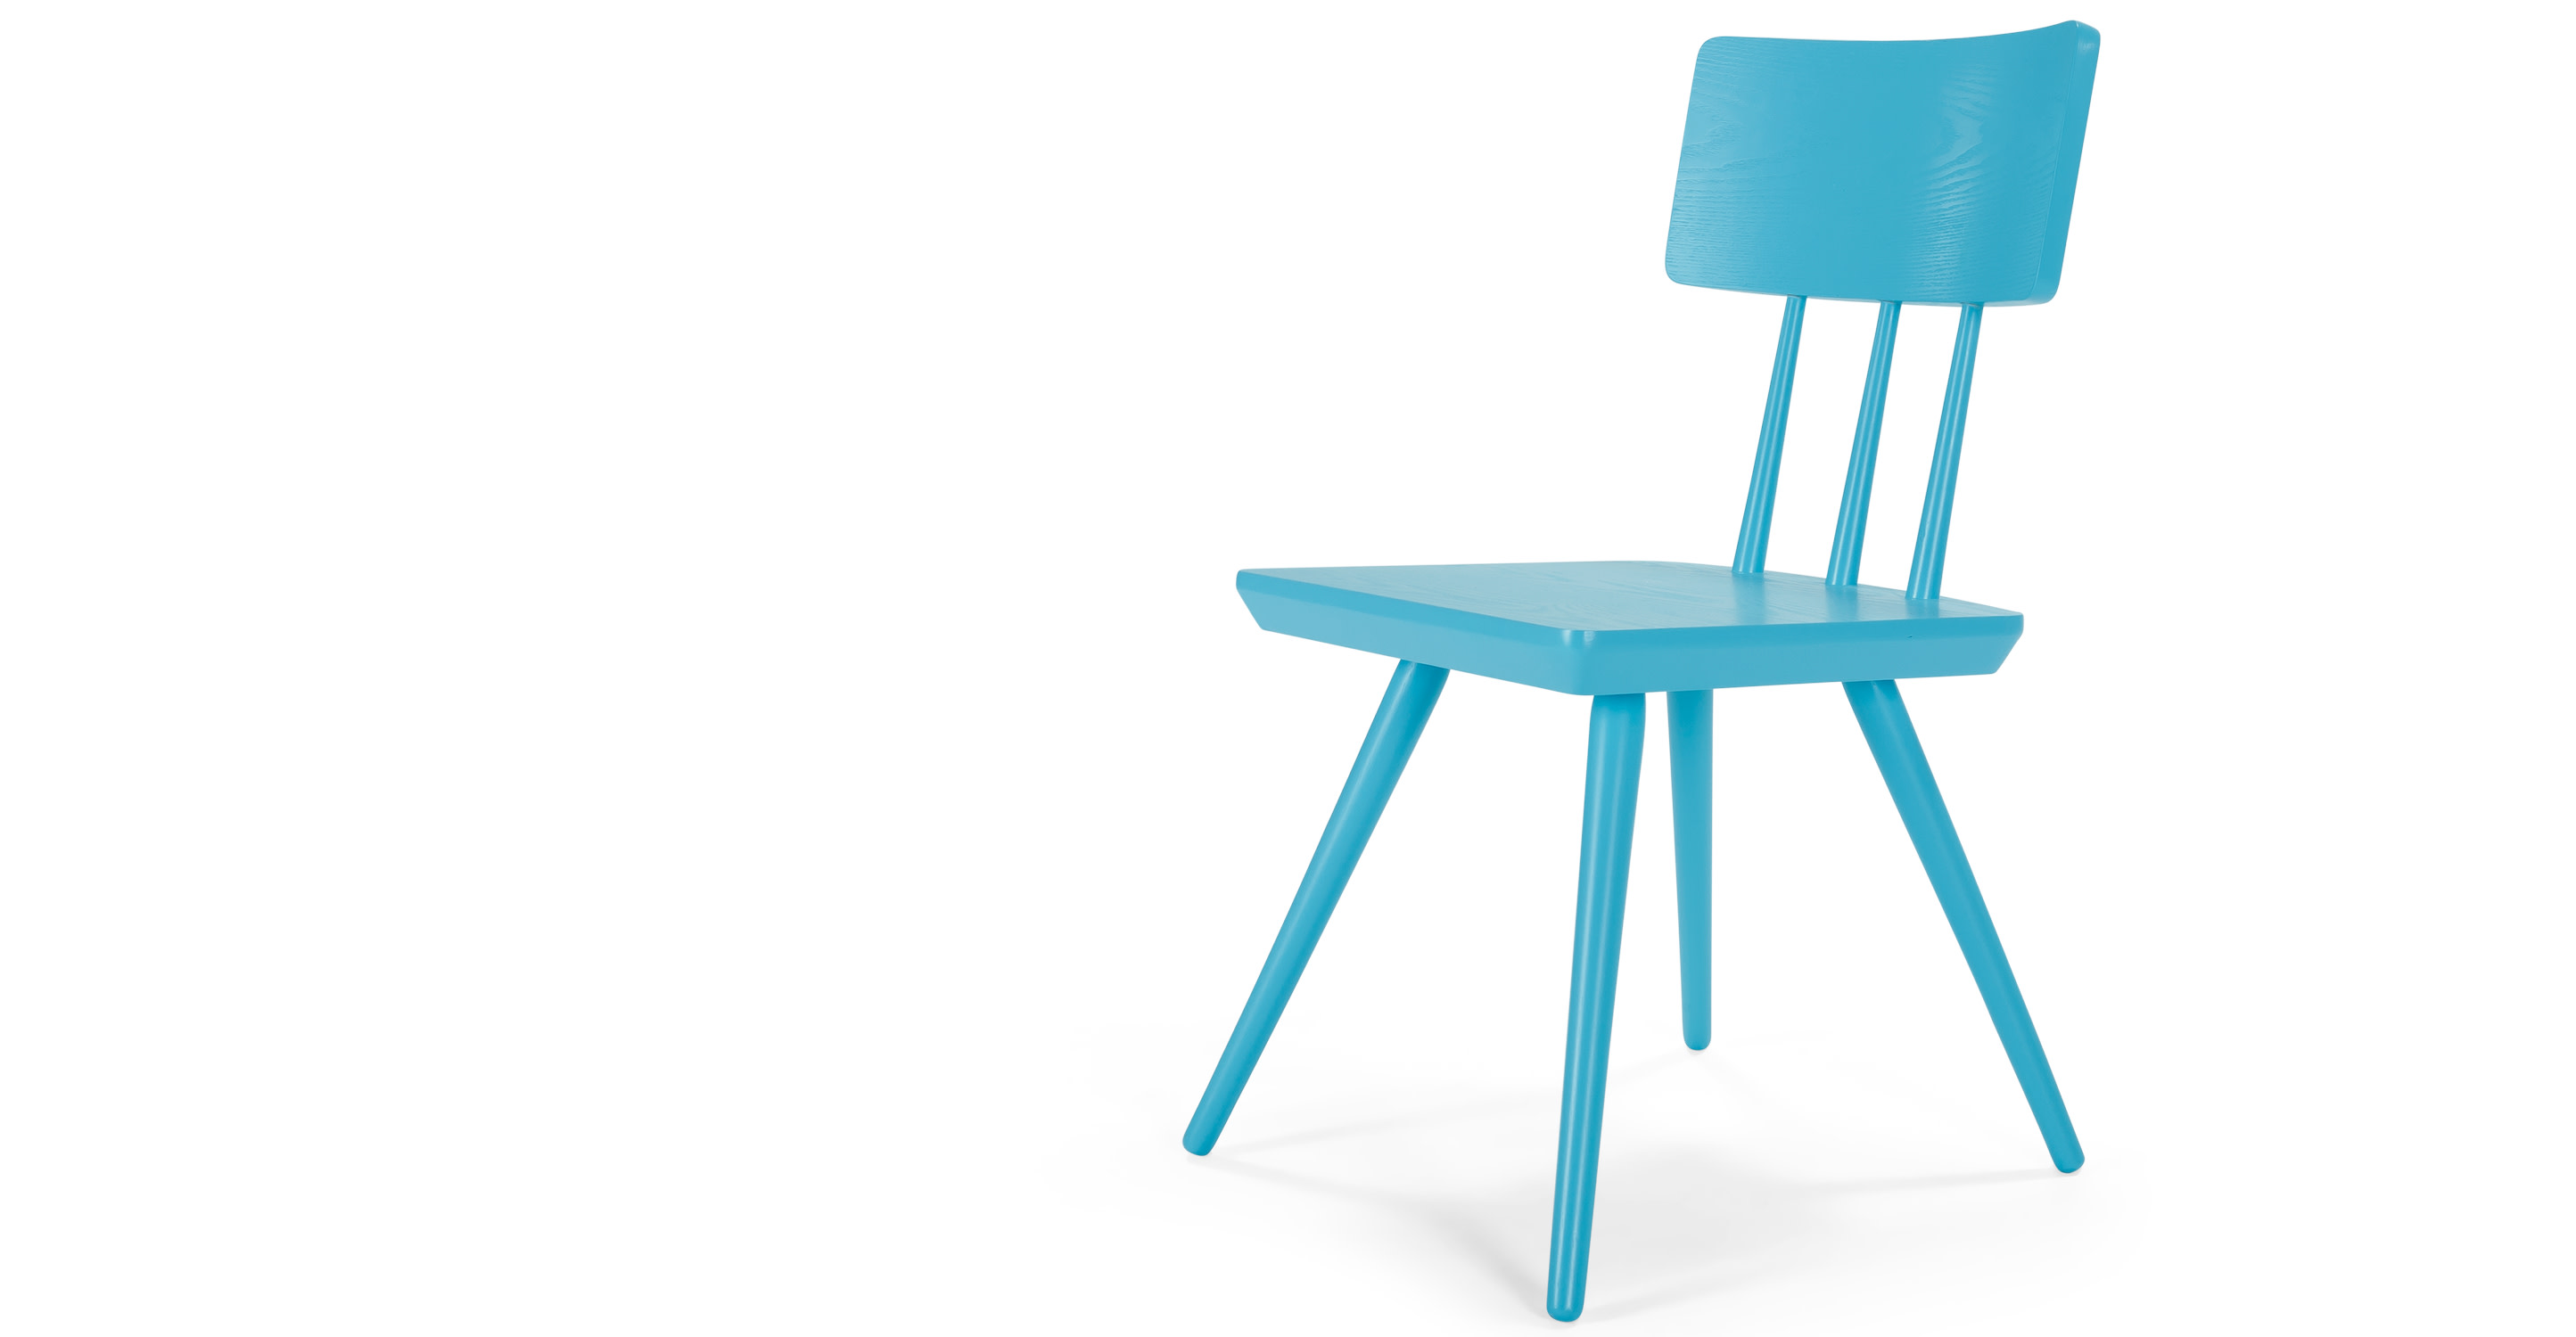 Cornell une chaise bleu turquoise for Chaise bleu turquoise